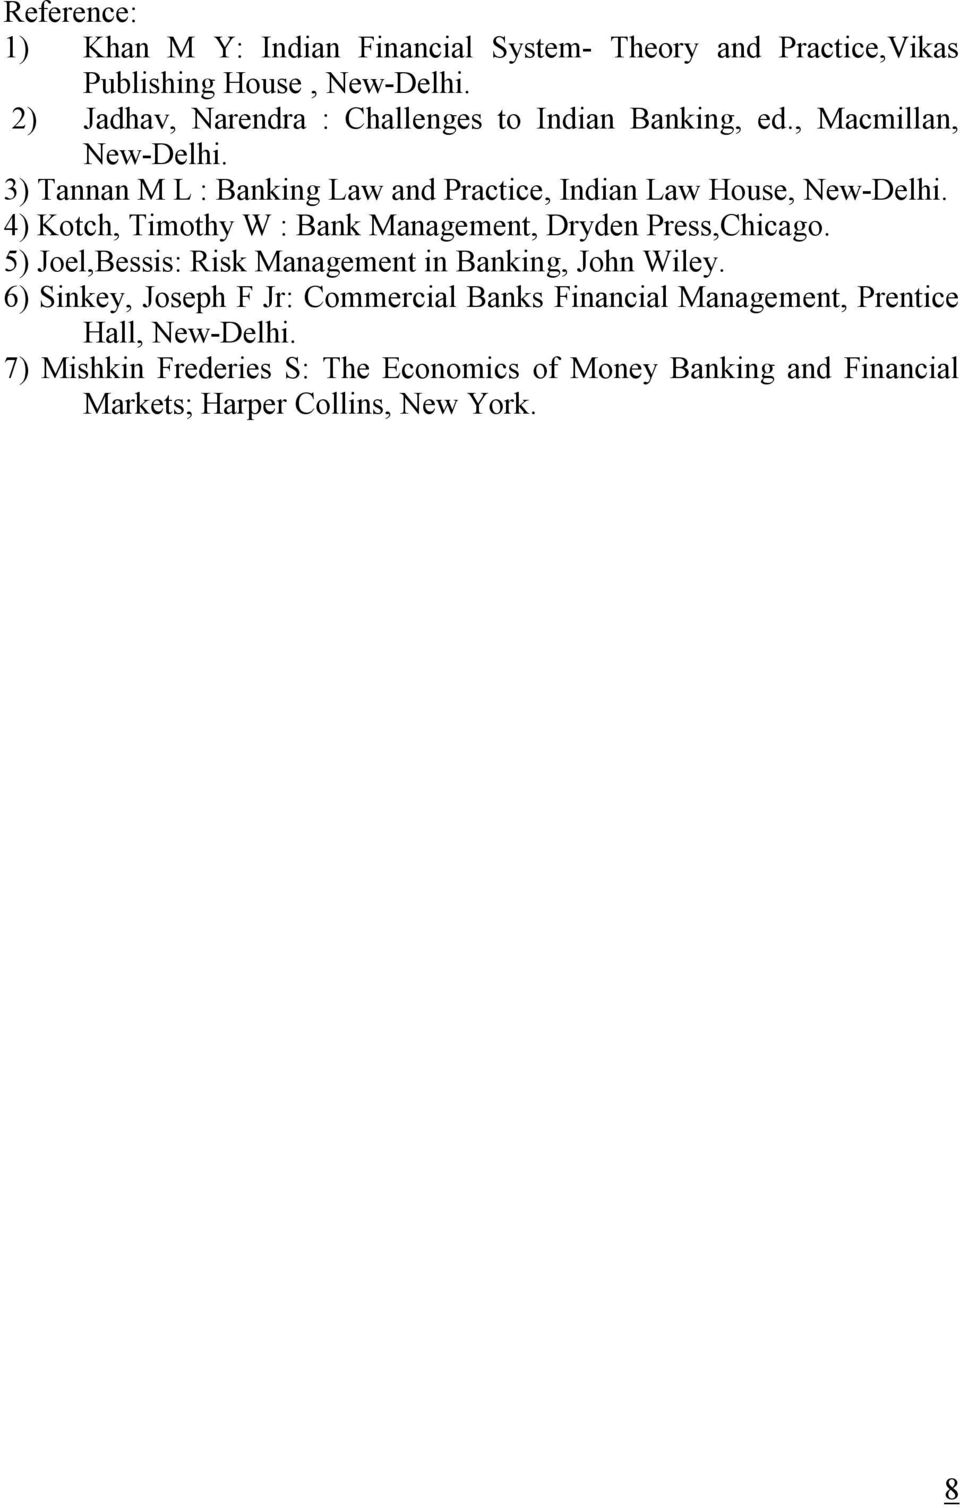 3) Tannan M L : Banking Law and Practice, Indian Law House, New-Delhi. 4) Kotch, Timothy W : Bank Management, Dryden Press,Chicago.